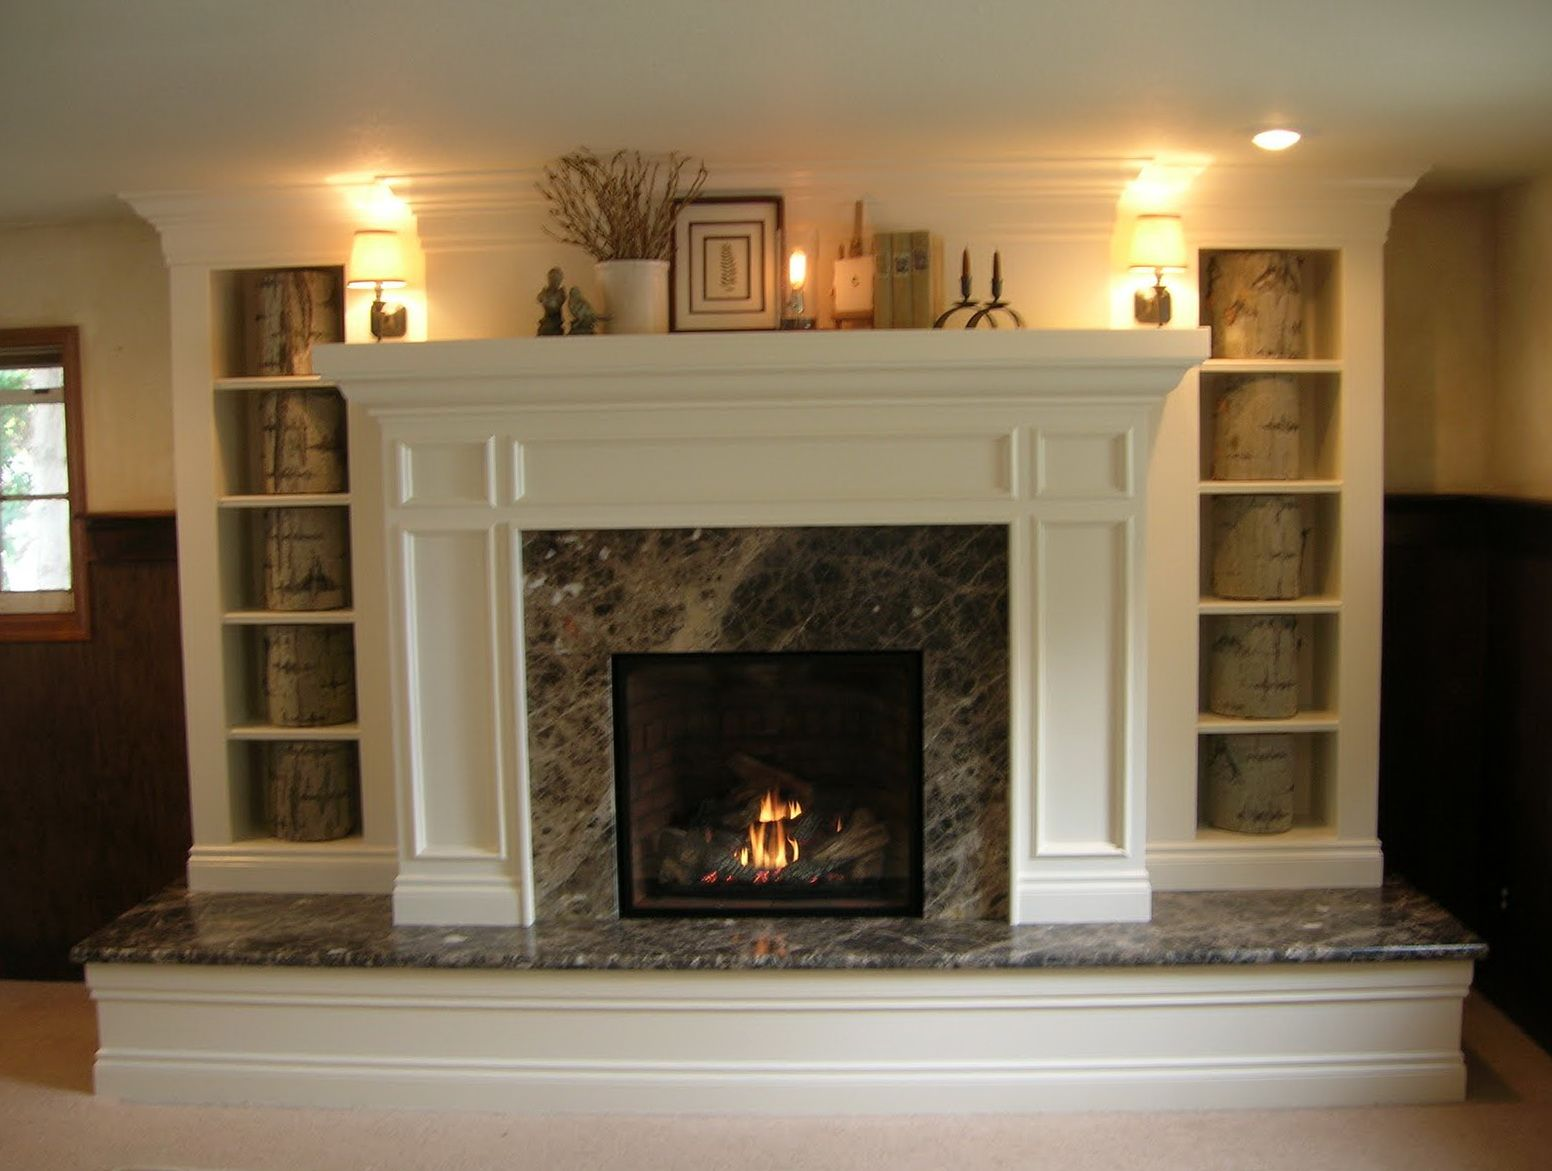 fireplace design with raised hearth raised hearth remodeling brick fireplaces remodeling brick fireplaces